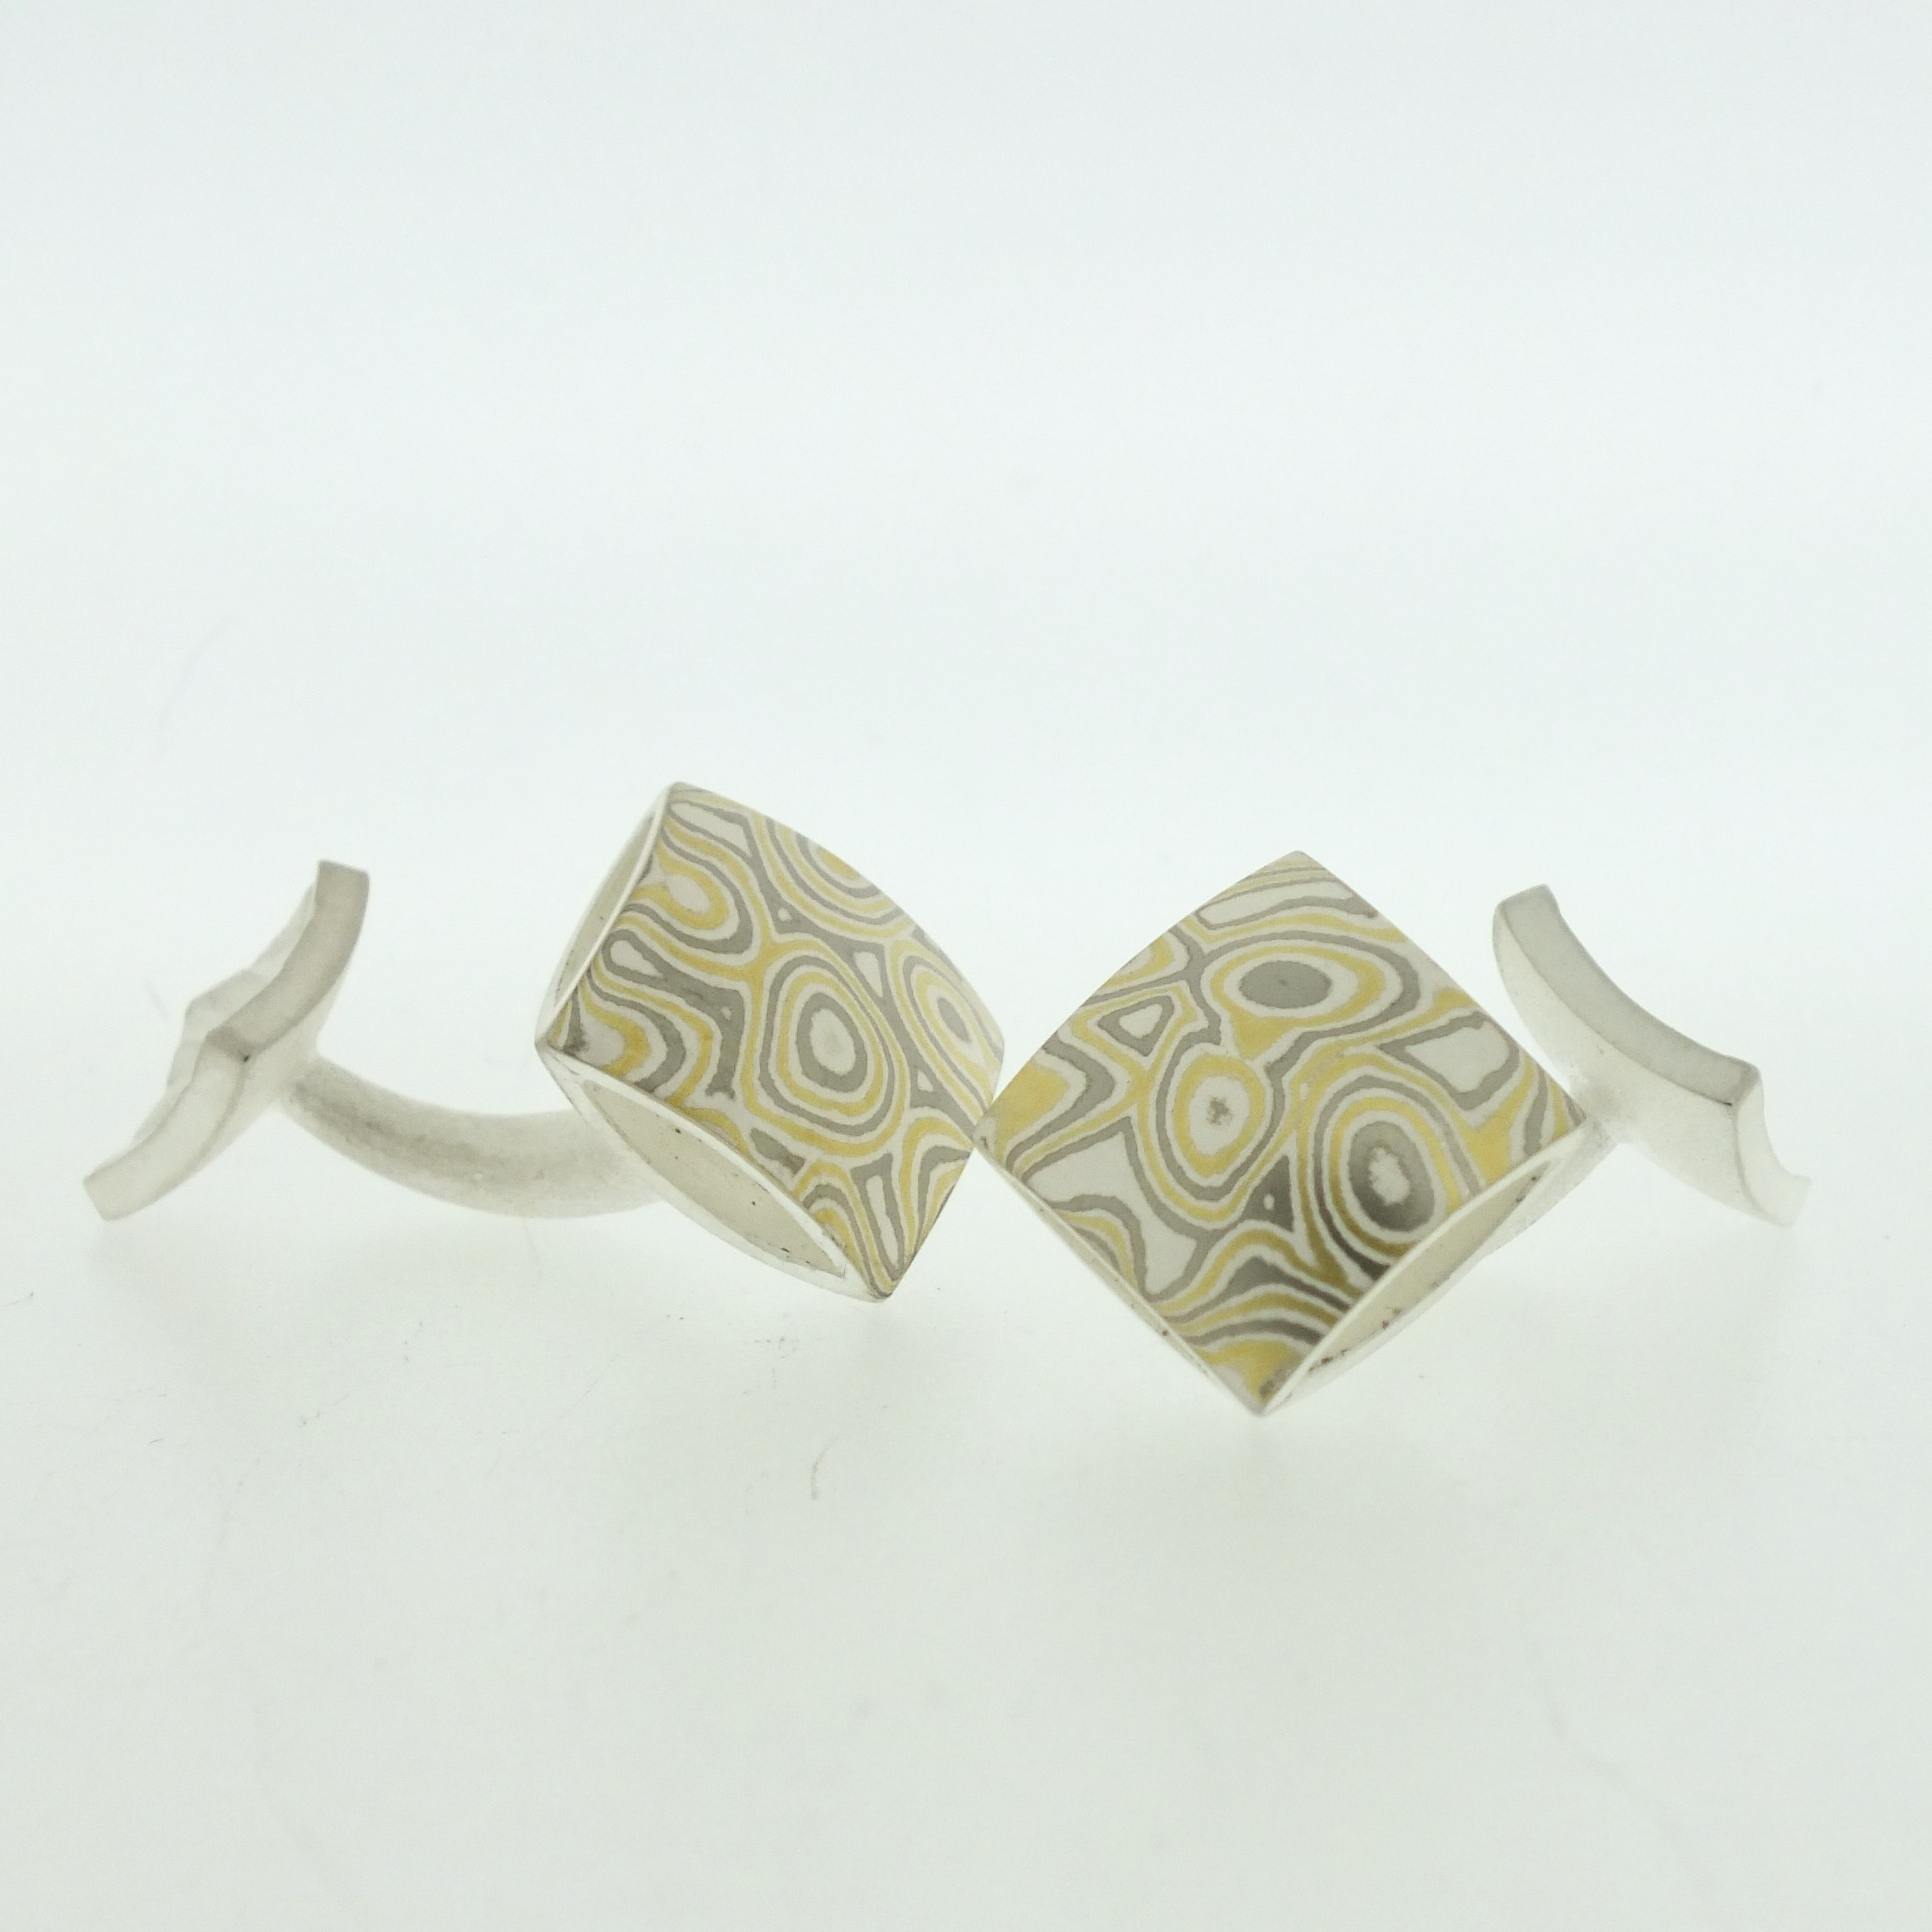 22k gold, 18k white gold and silver mokume gane square pillow cufflinks